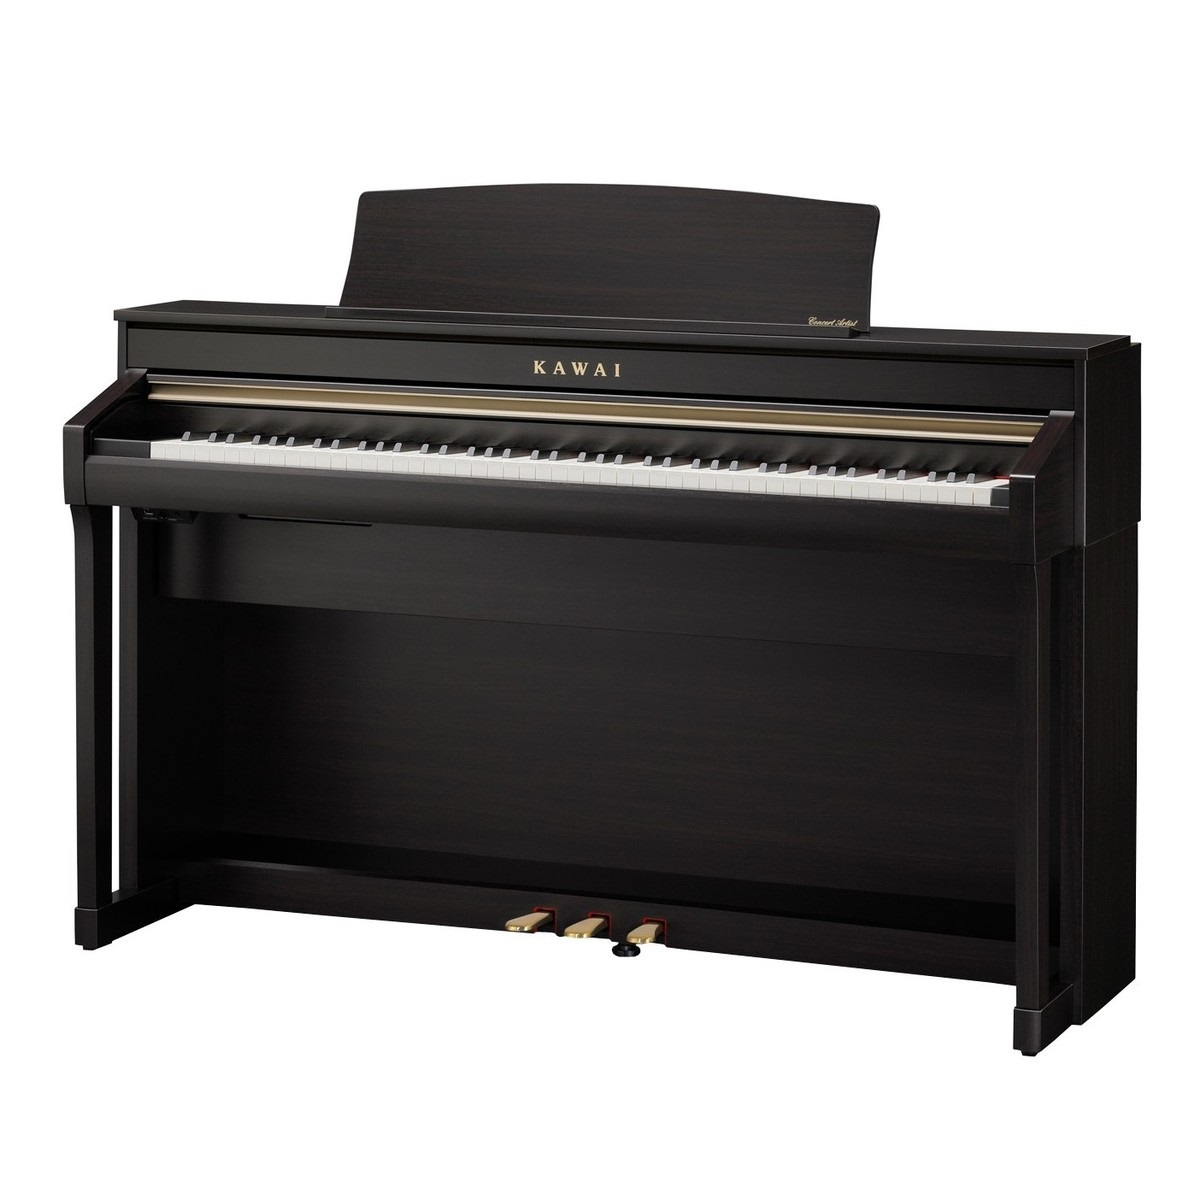 stojanek na noty na piano levn mobilmania zbo. Black Bedroom Furniture Sets. Home Design Ideas